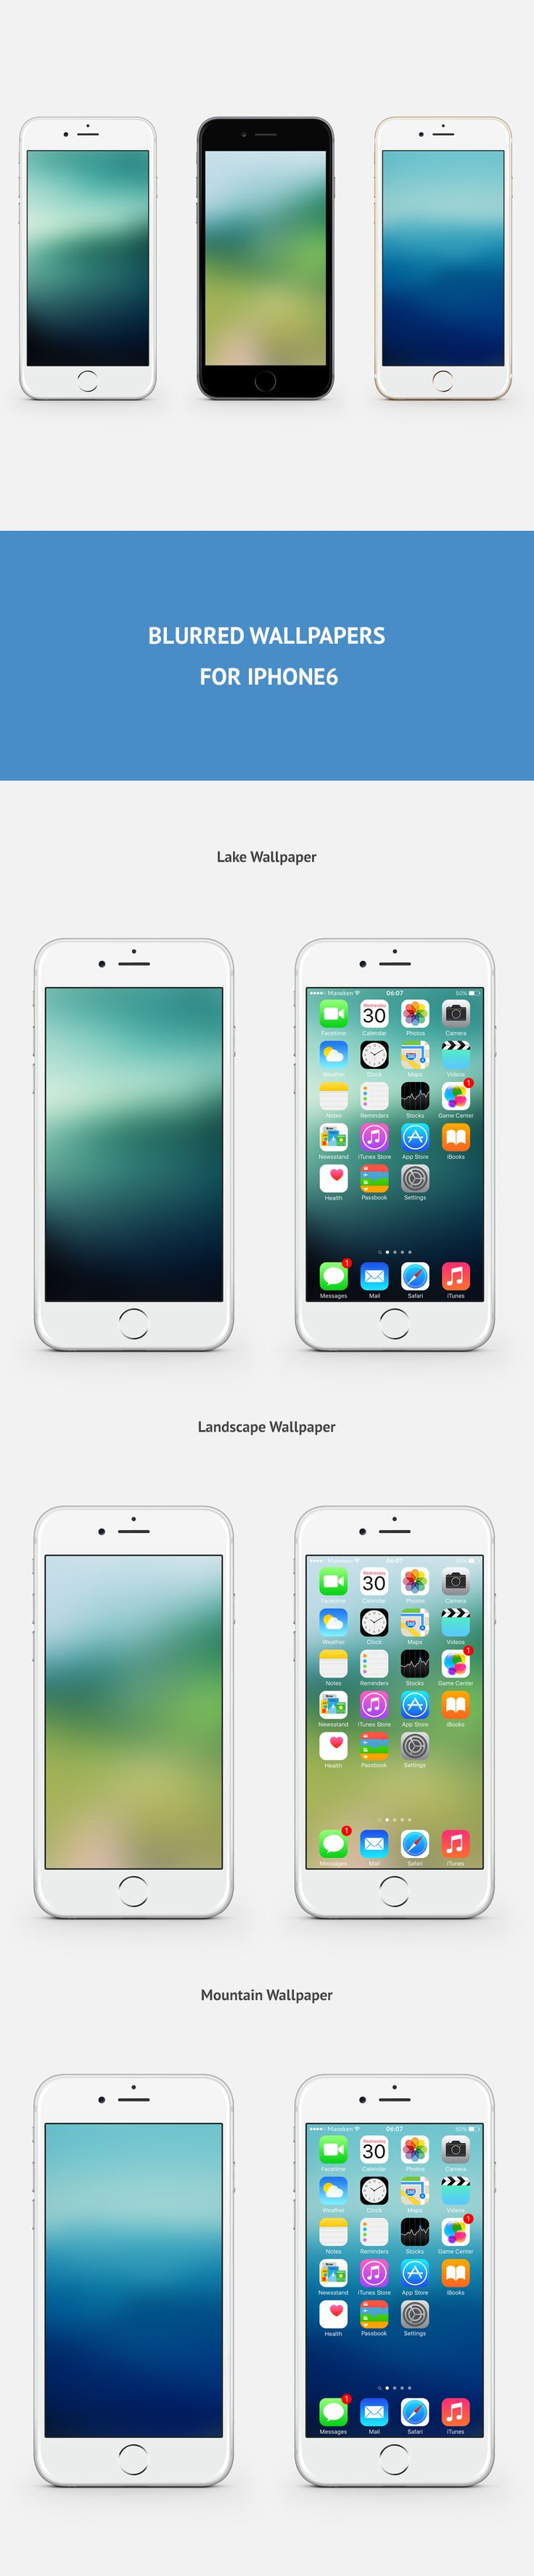 Free Blurred Wallpapers for iPhone6